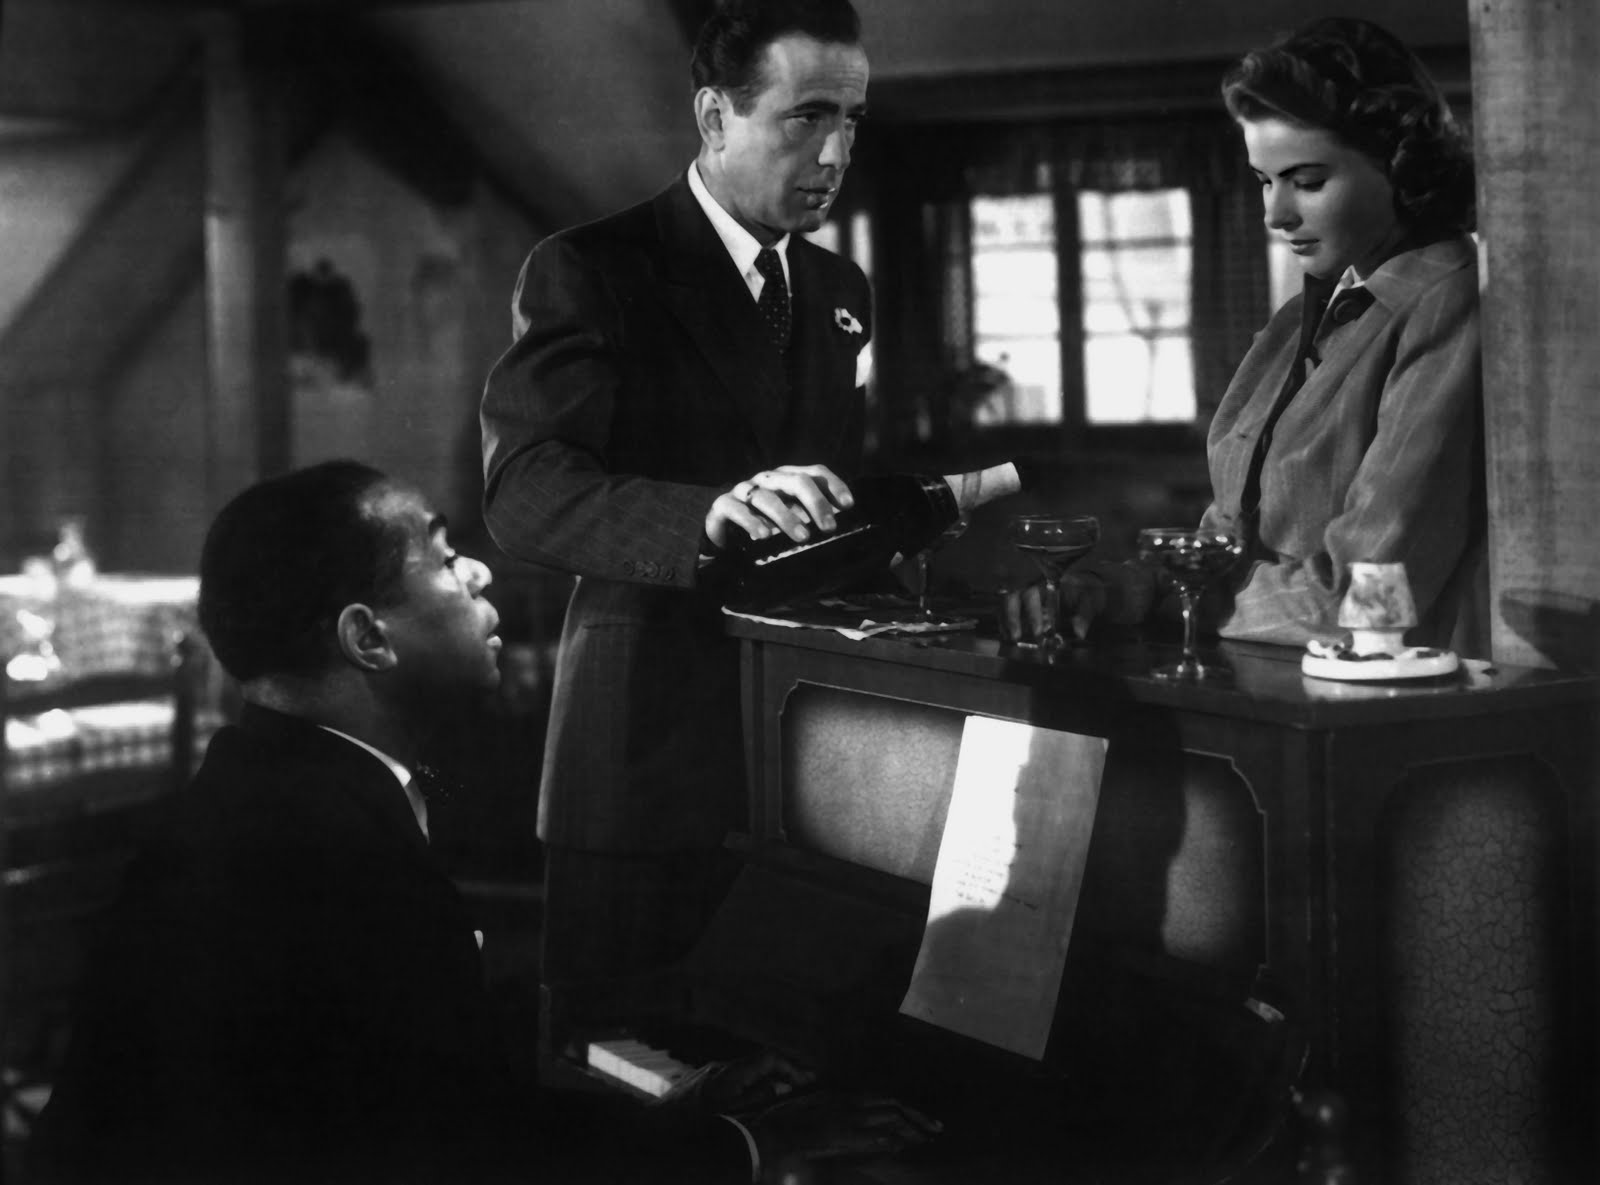 an analysis of casablanca a film by michael curtiz Find trailers, reviews, synopsis, awards and cast information for casablanca (1942) - michael curtiz on allmovie - one of the most beloved american films, this.